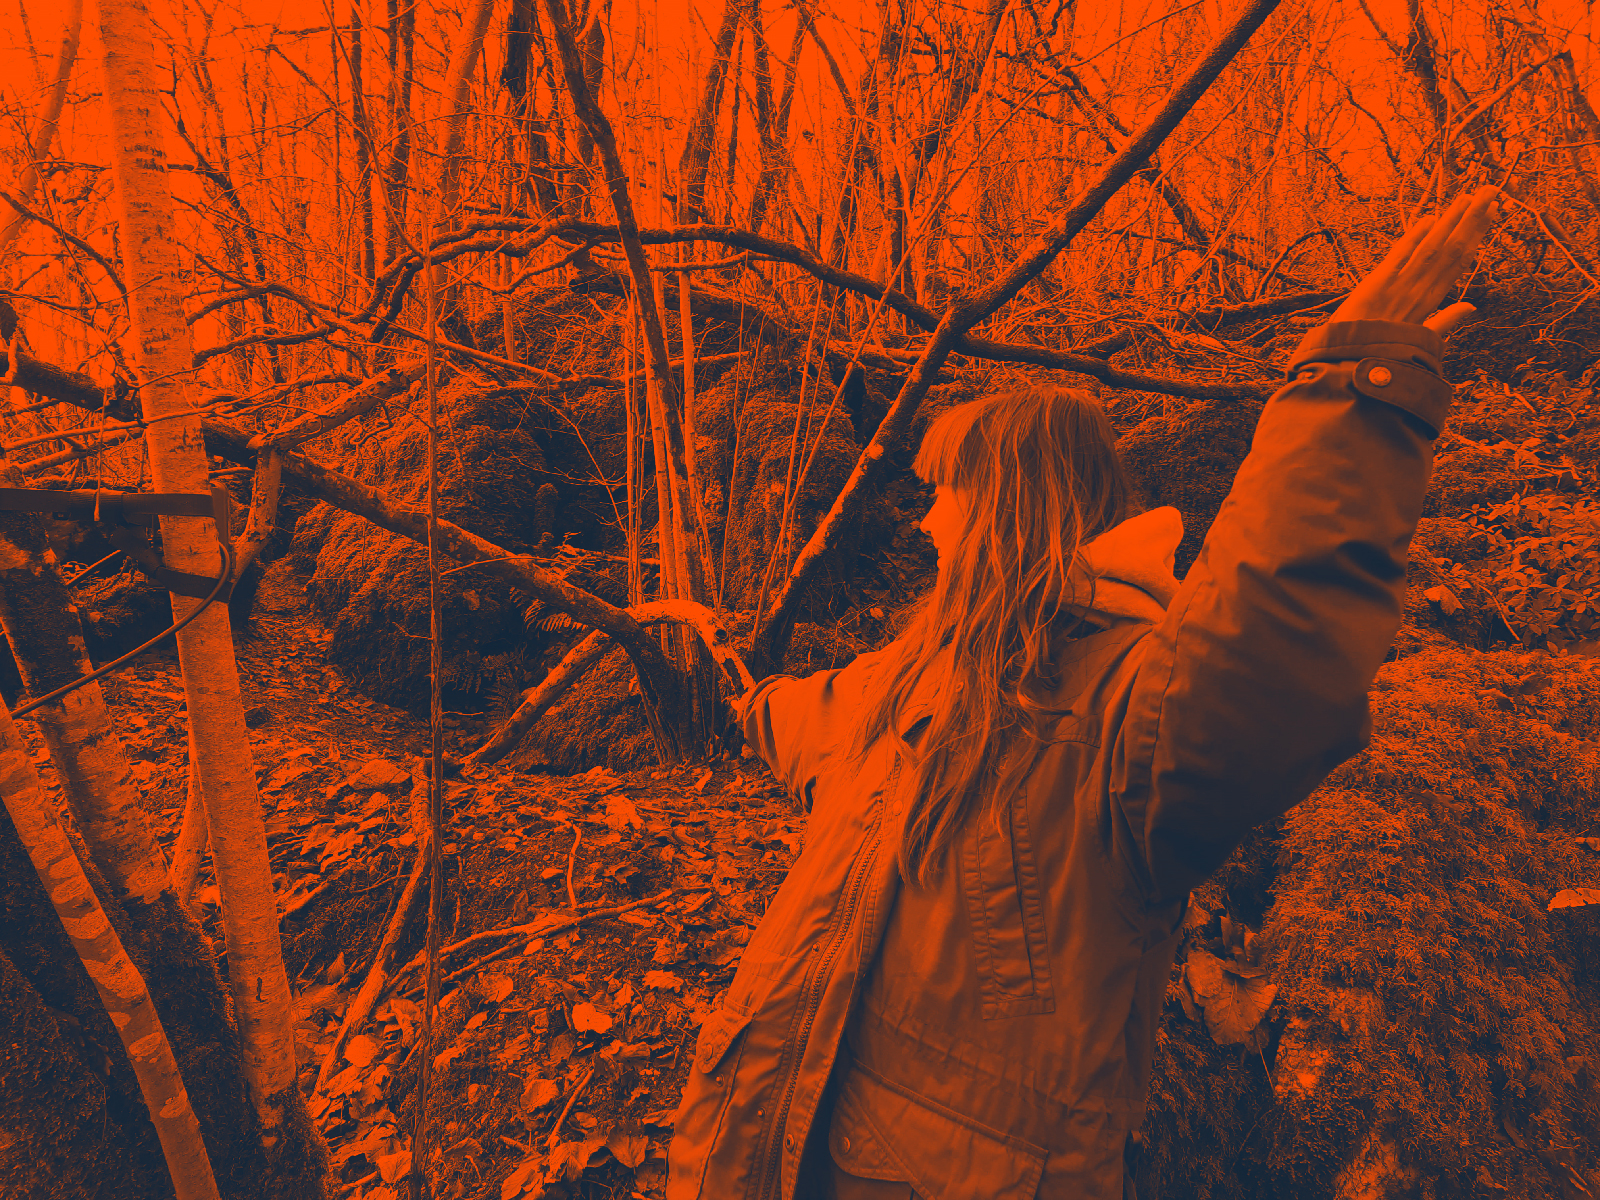 oxbridge student eleanor avon out in the woods